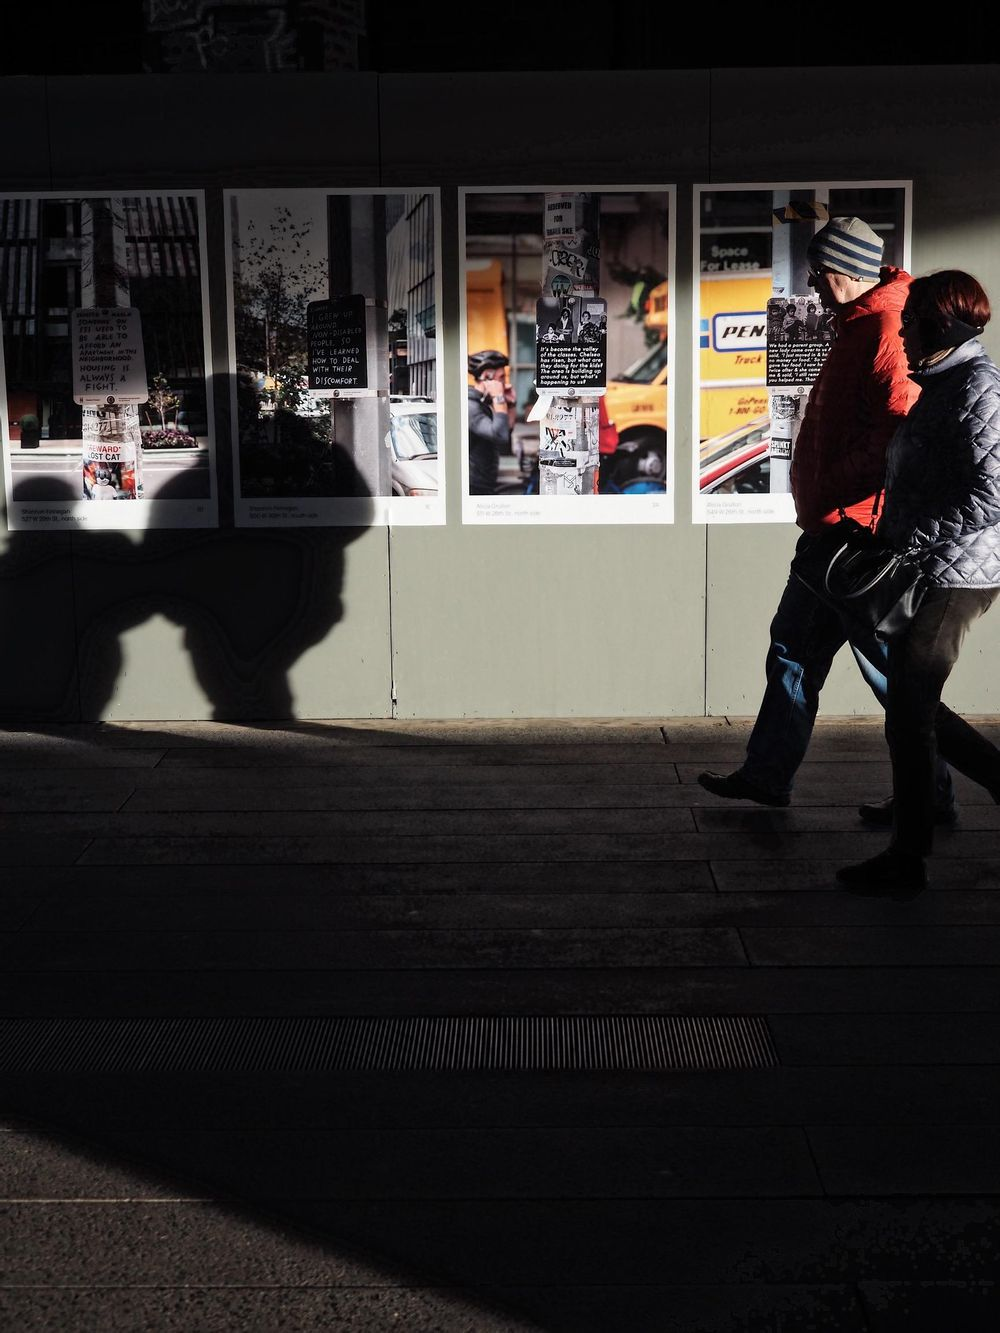 Exploring NYC - image 1 - student project